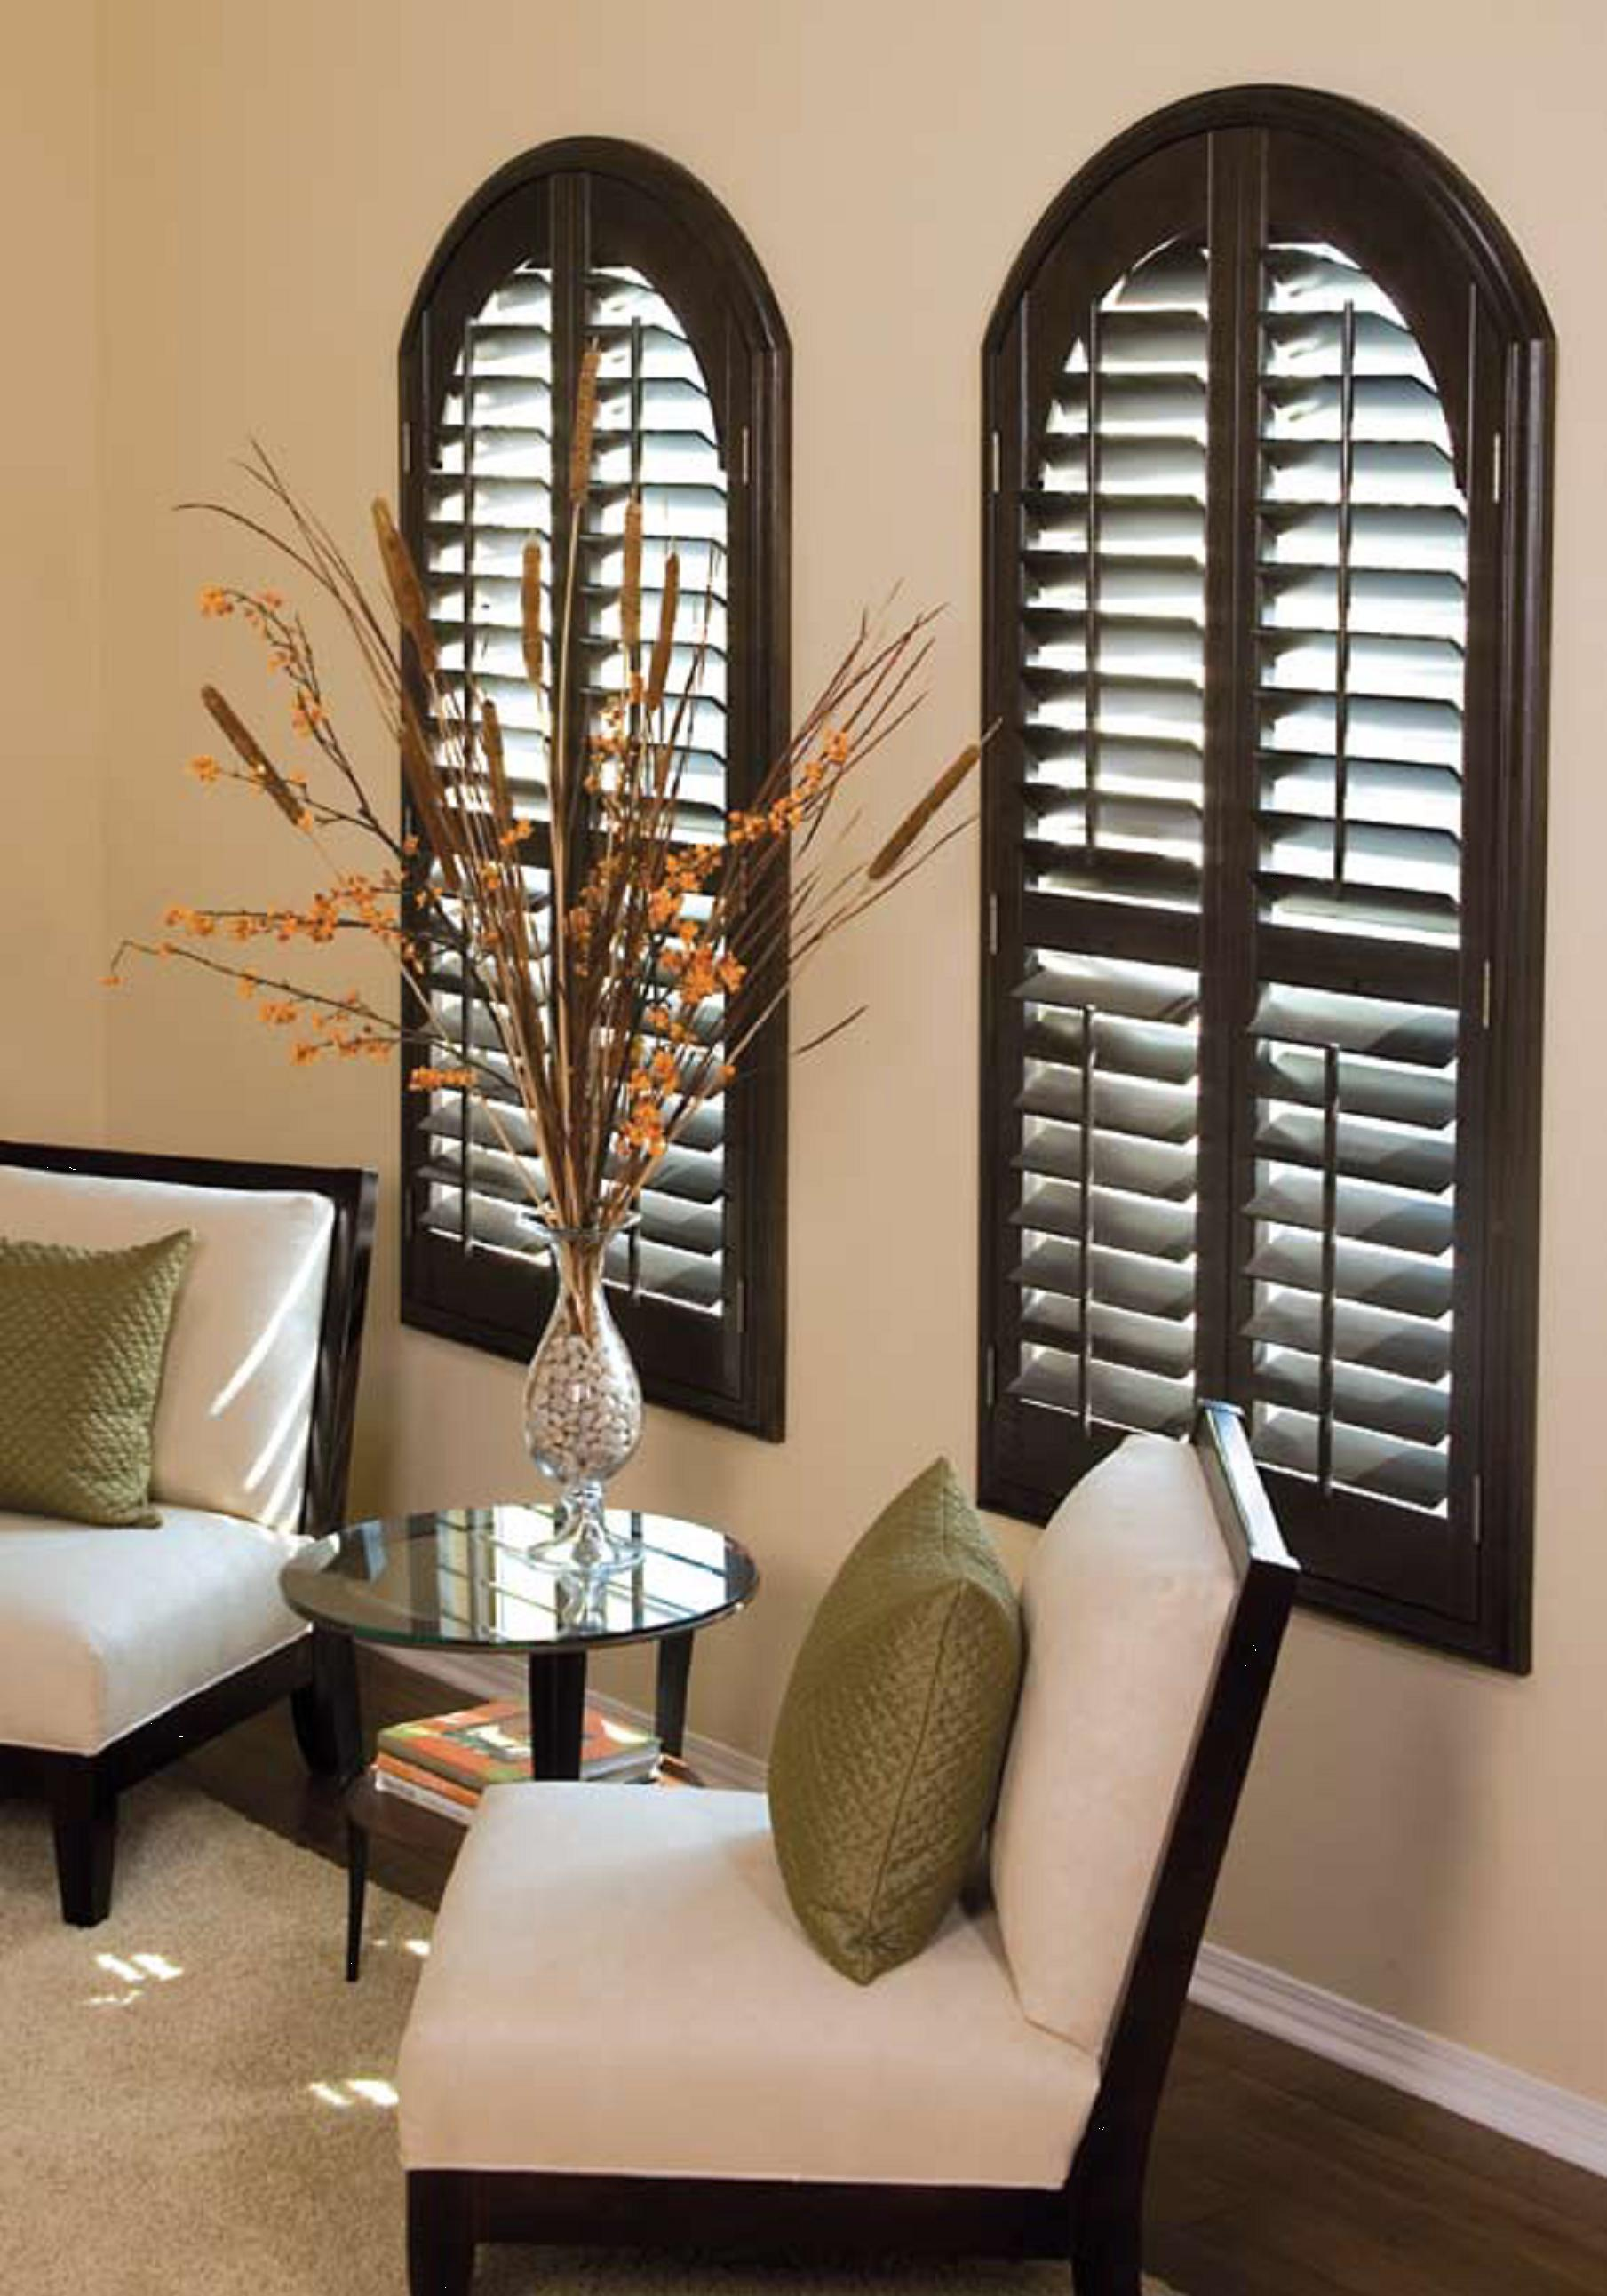 kathy vertical ireland shades visions blinds shutters home